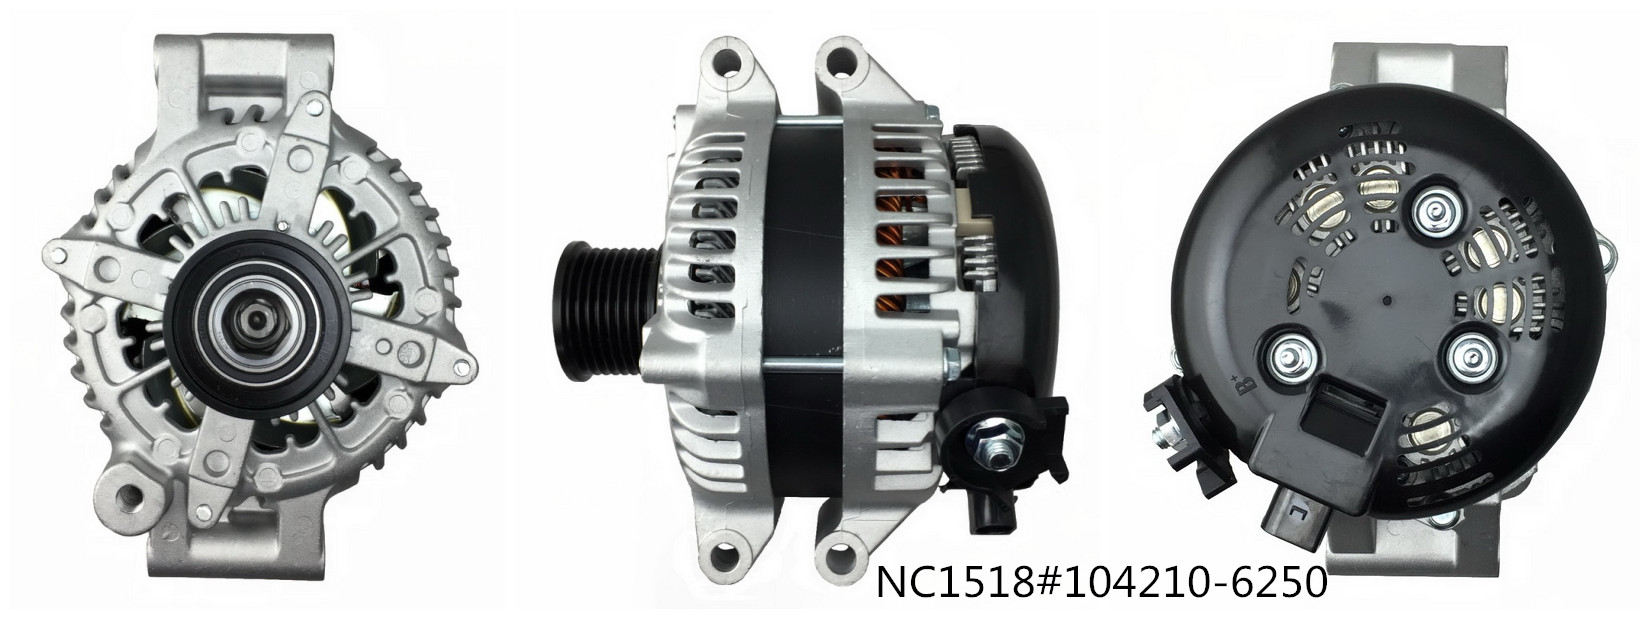 Hairpin Alternators NC1518(12V 210A, 104210-6250)